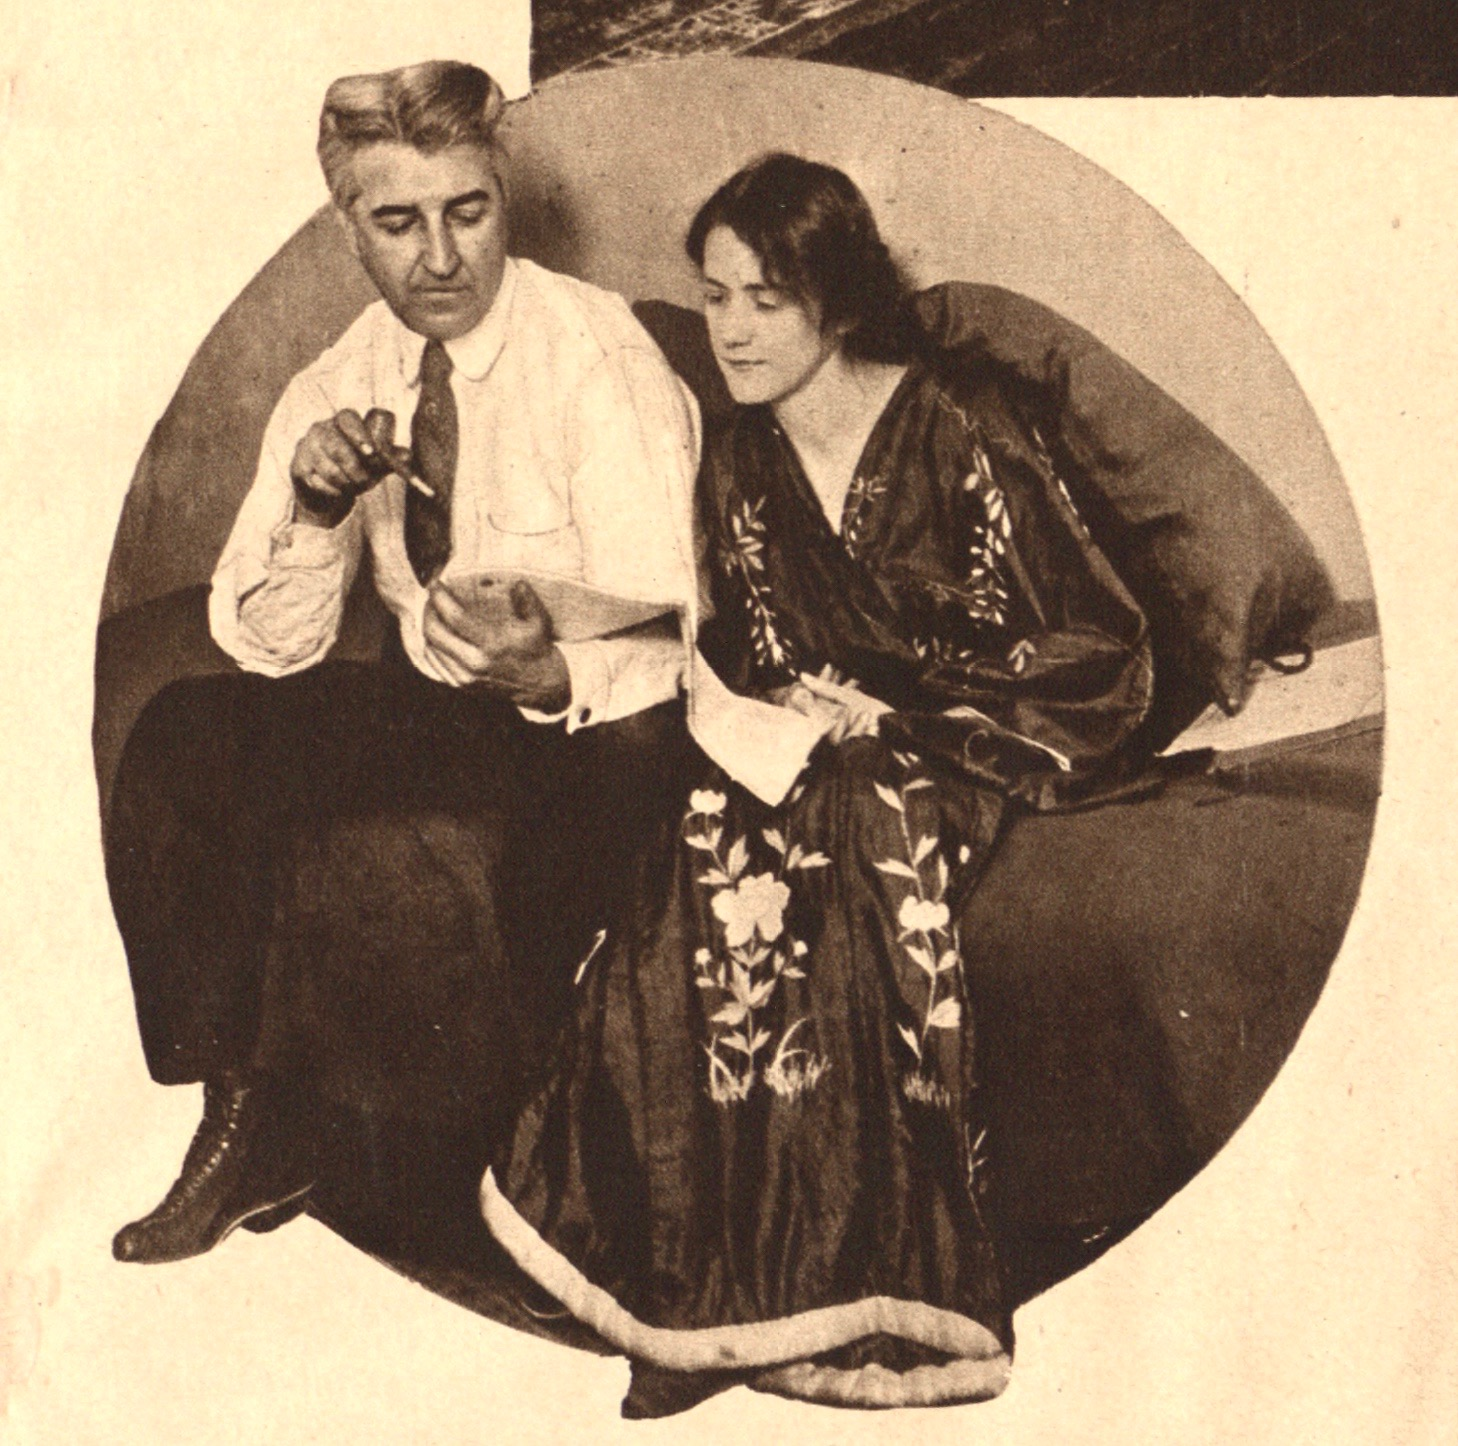 Susan Glaspell, posed here with her husband and colleague George Cram Cook, helped to blaze new directions in American theater. (photo: Paul Thompson for the New York Tribune, 1917)